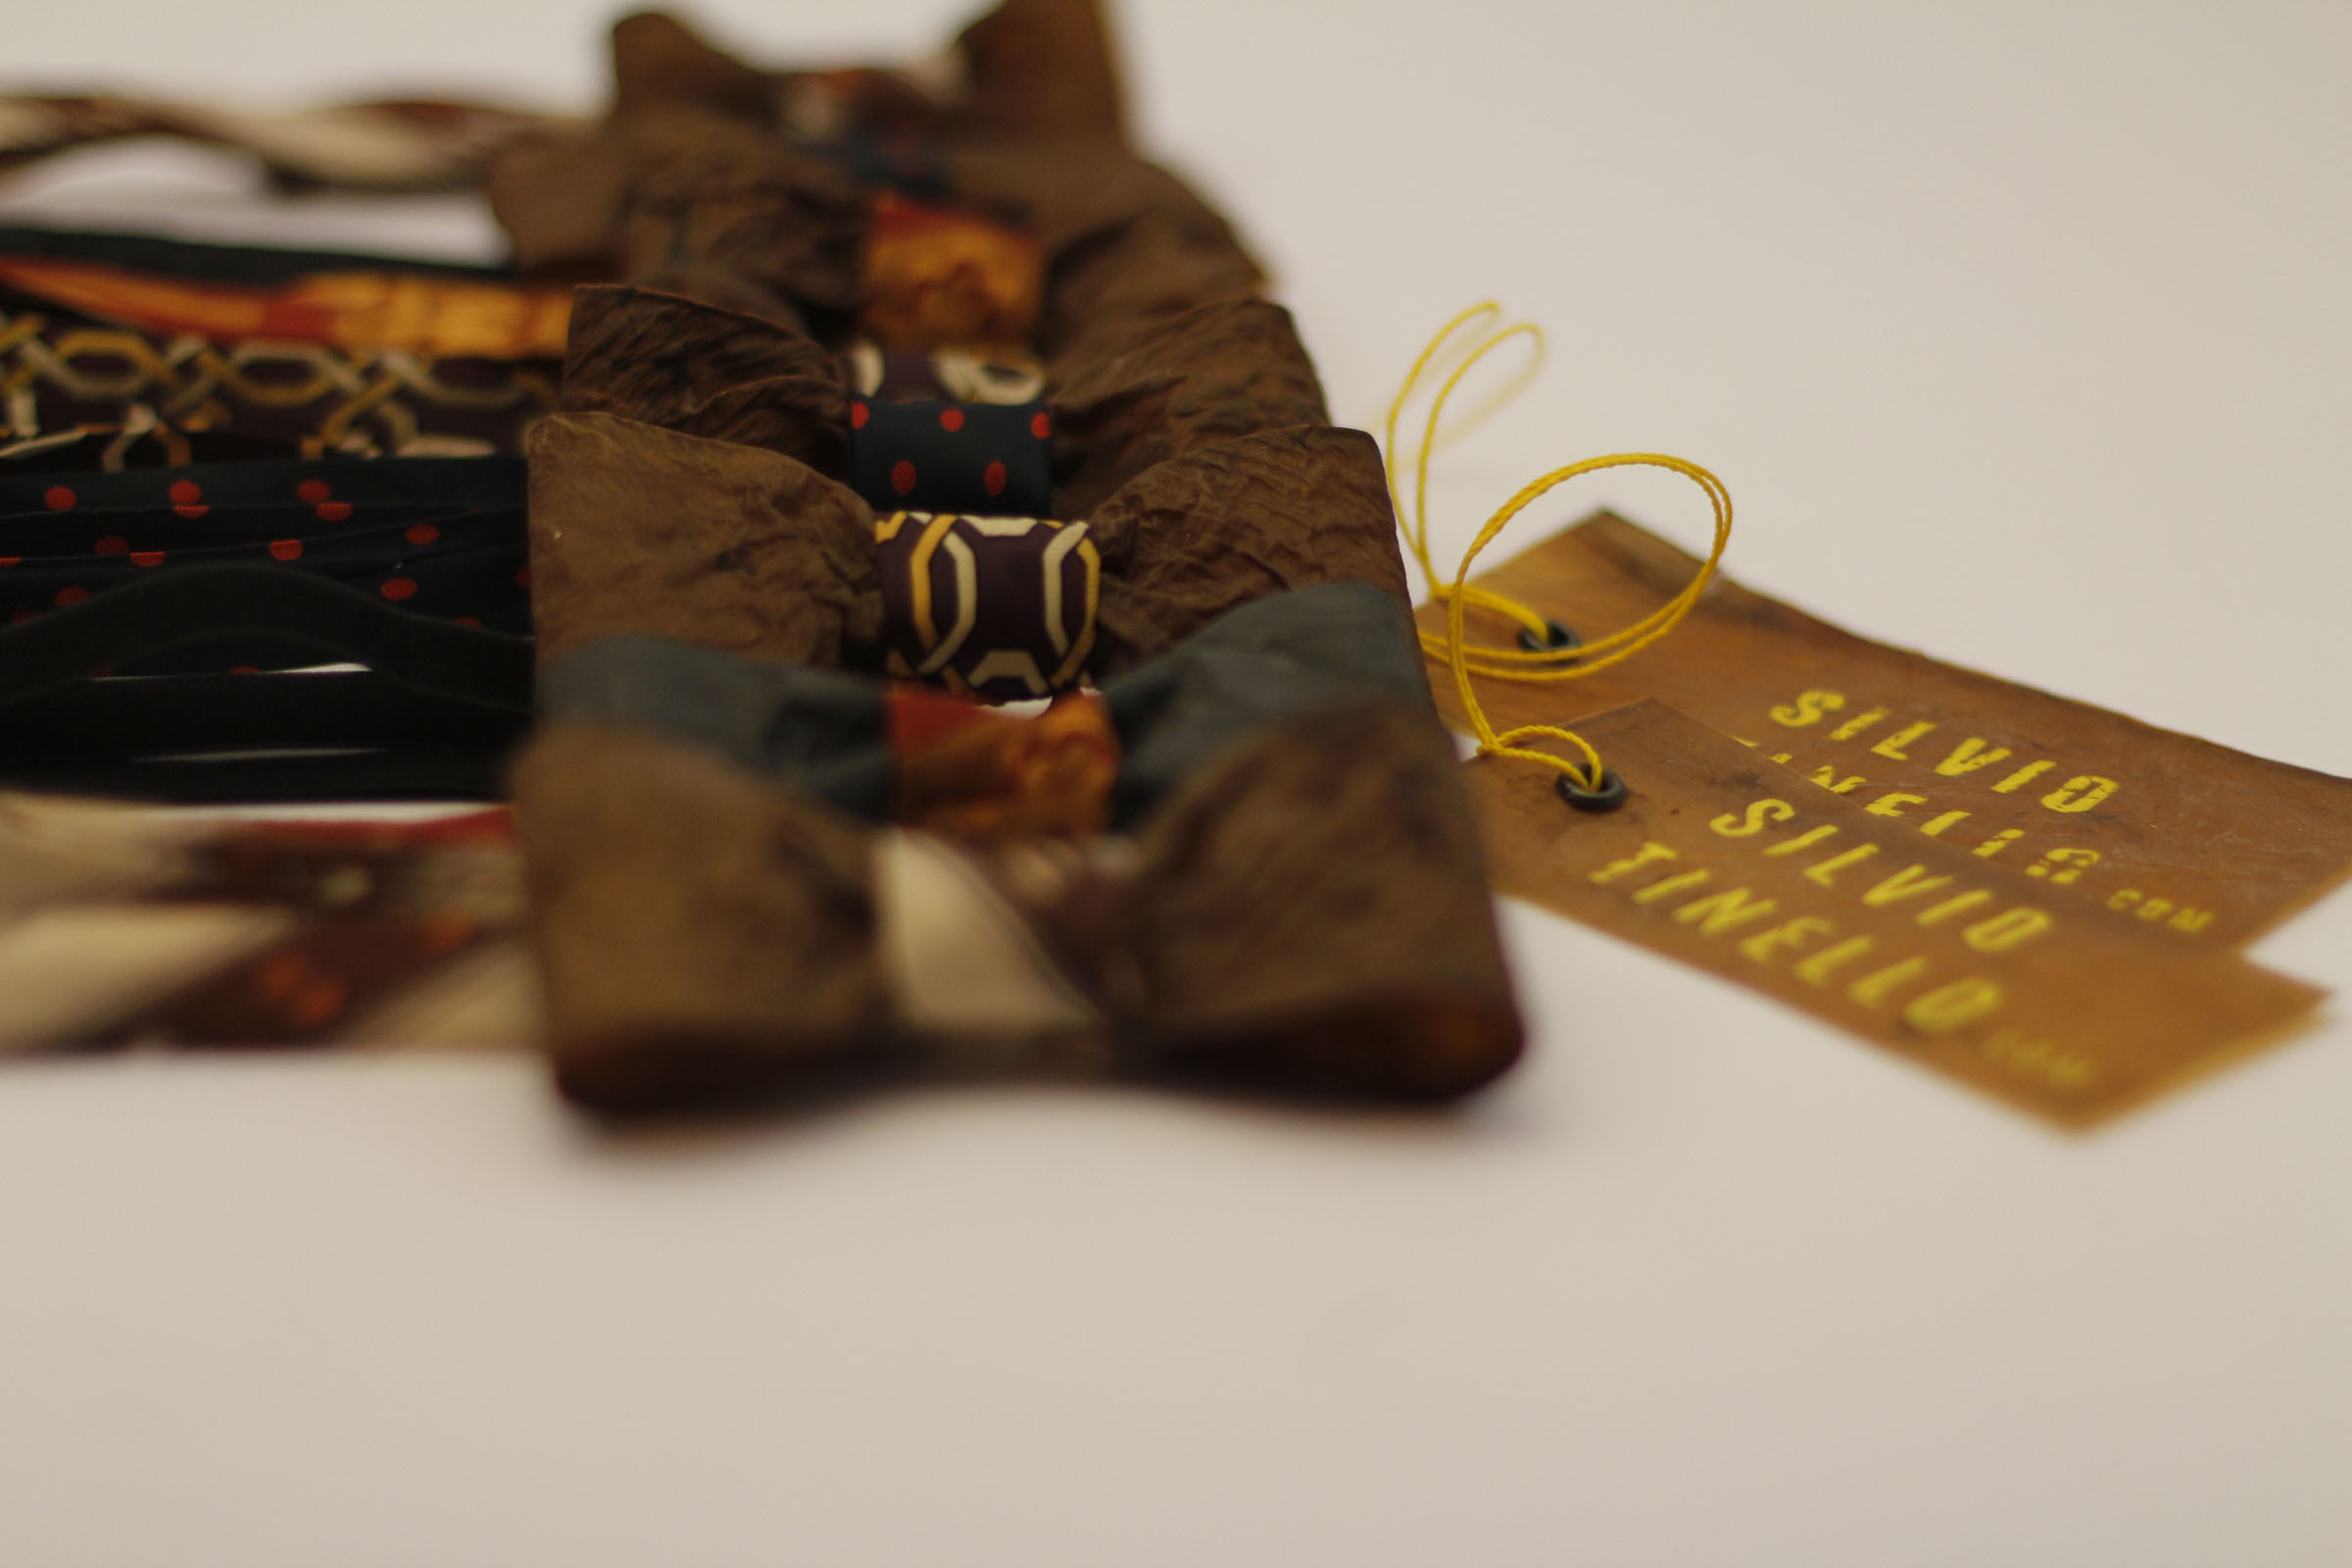 Bowie Bowtie, From the  Grown Objects  Collection by Silvio Tinello